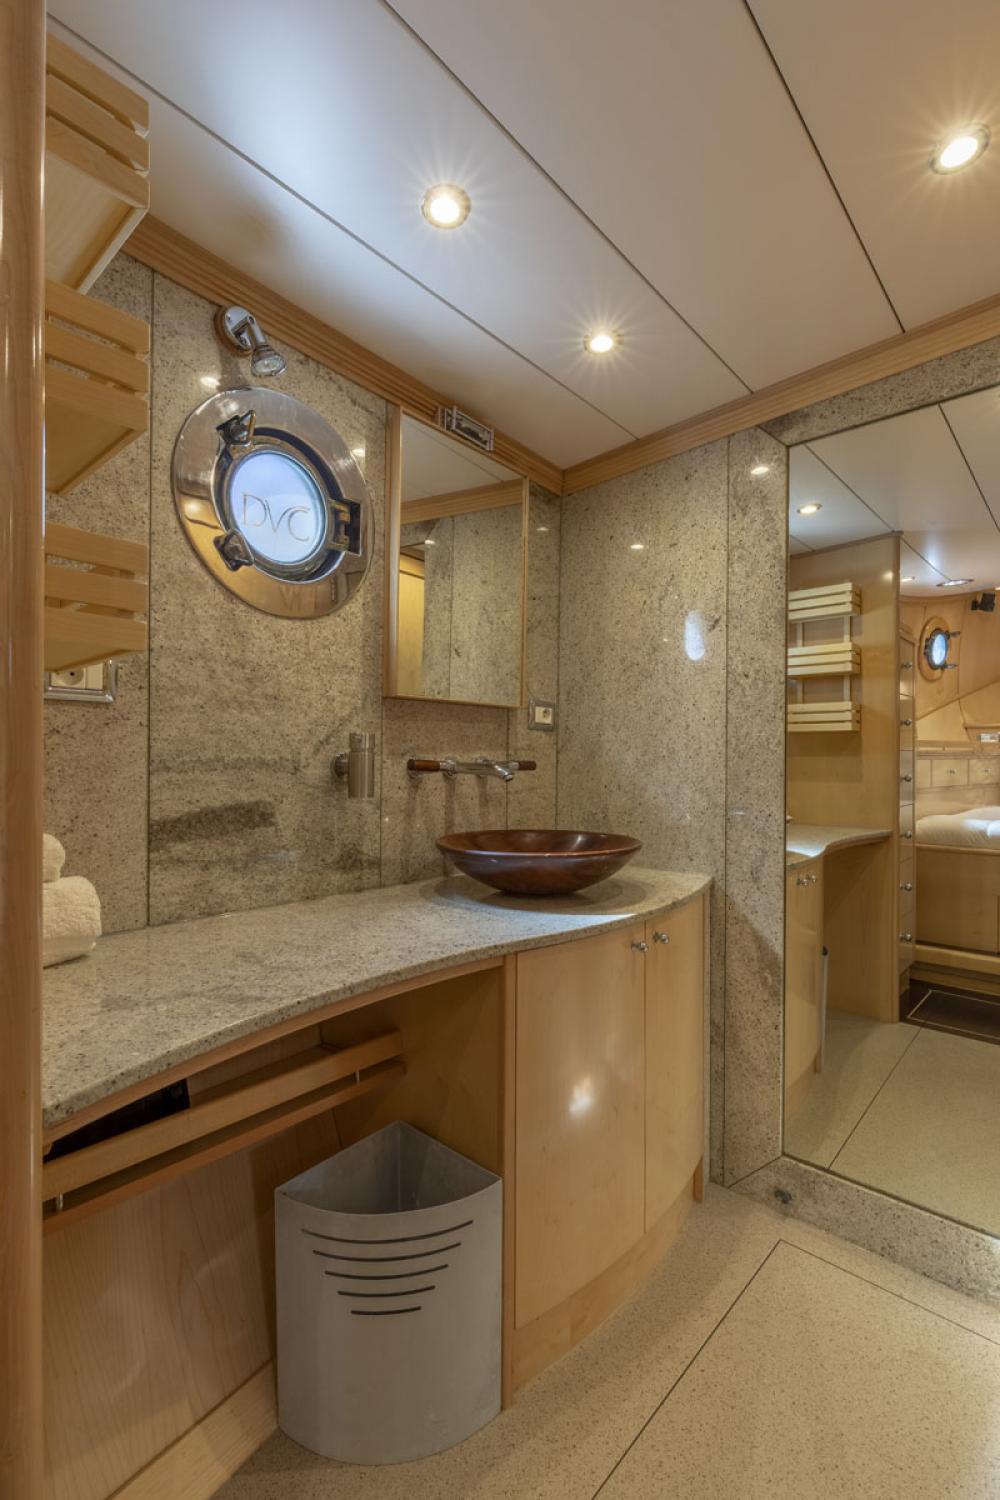 DE VROUWE CHRISTINA - Luxury Sailing Yacht For Sale - 3 CABINS - Img 4 | C&N